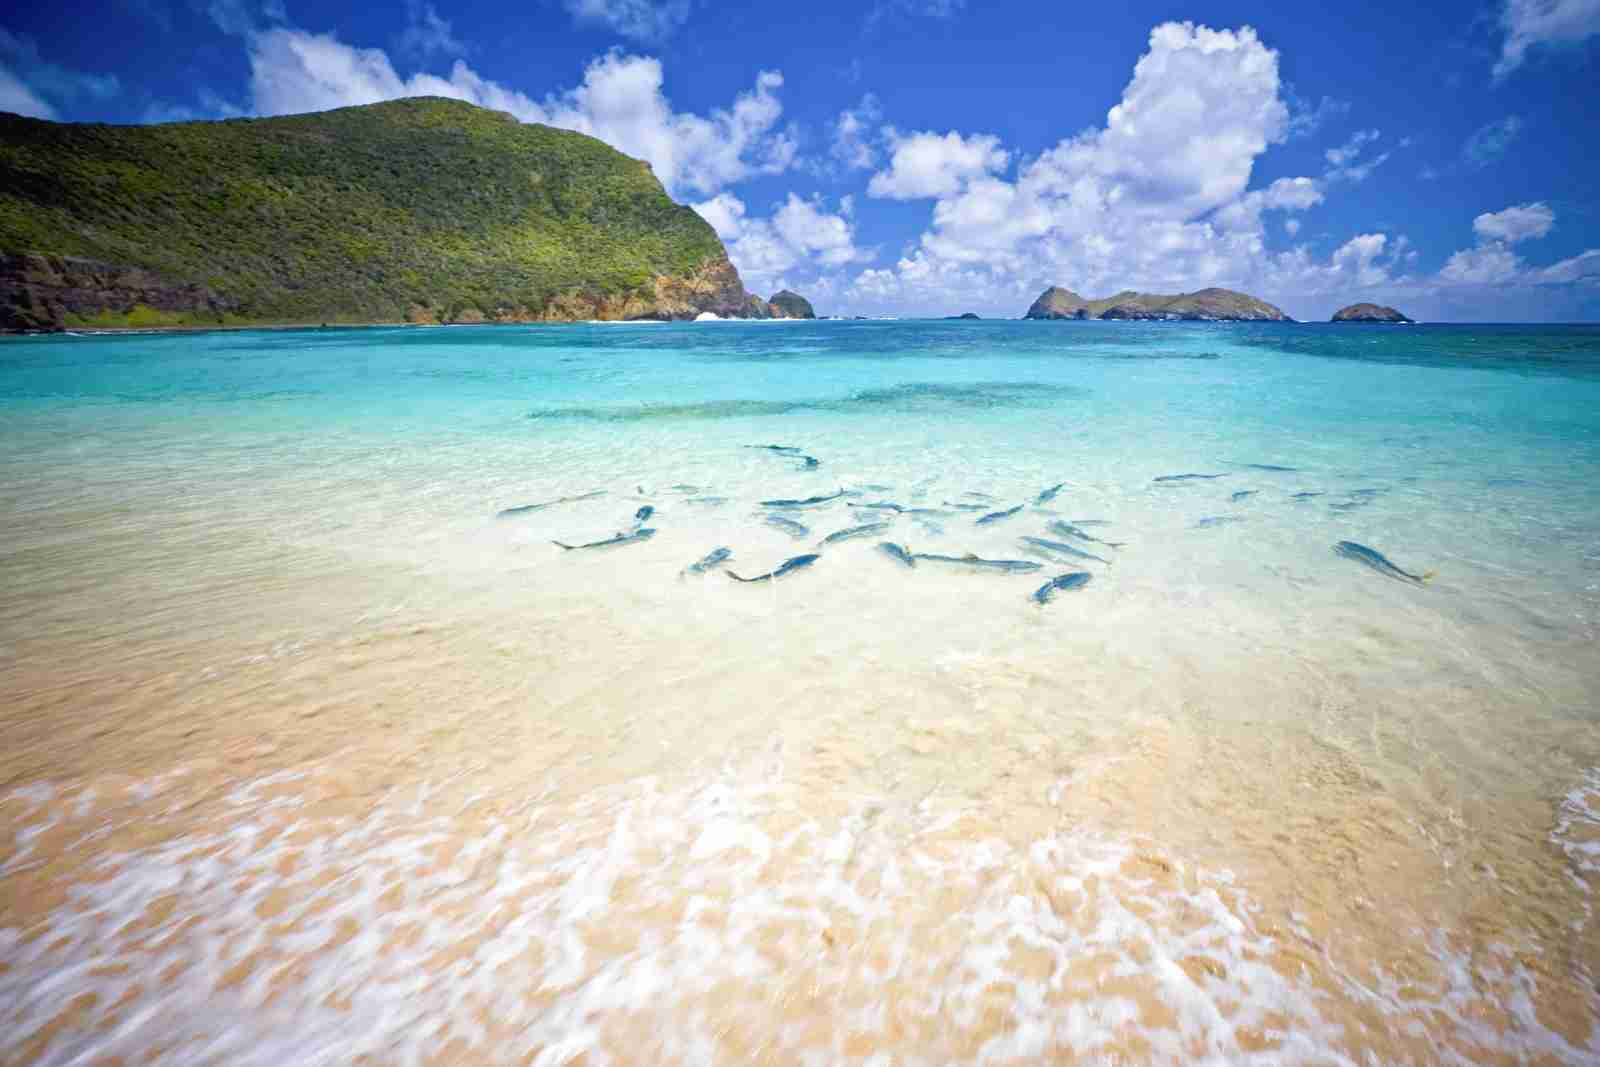 Lord Howe Island. (Photo via Shutterstock)